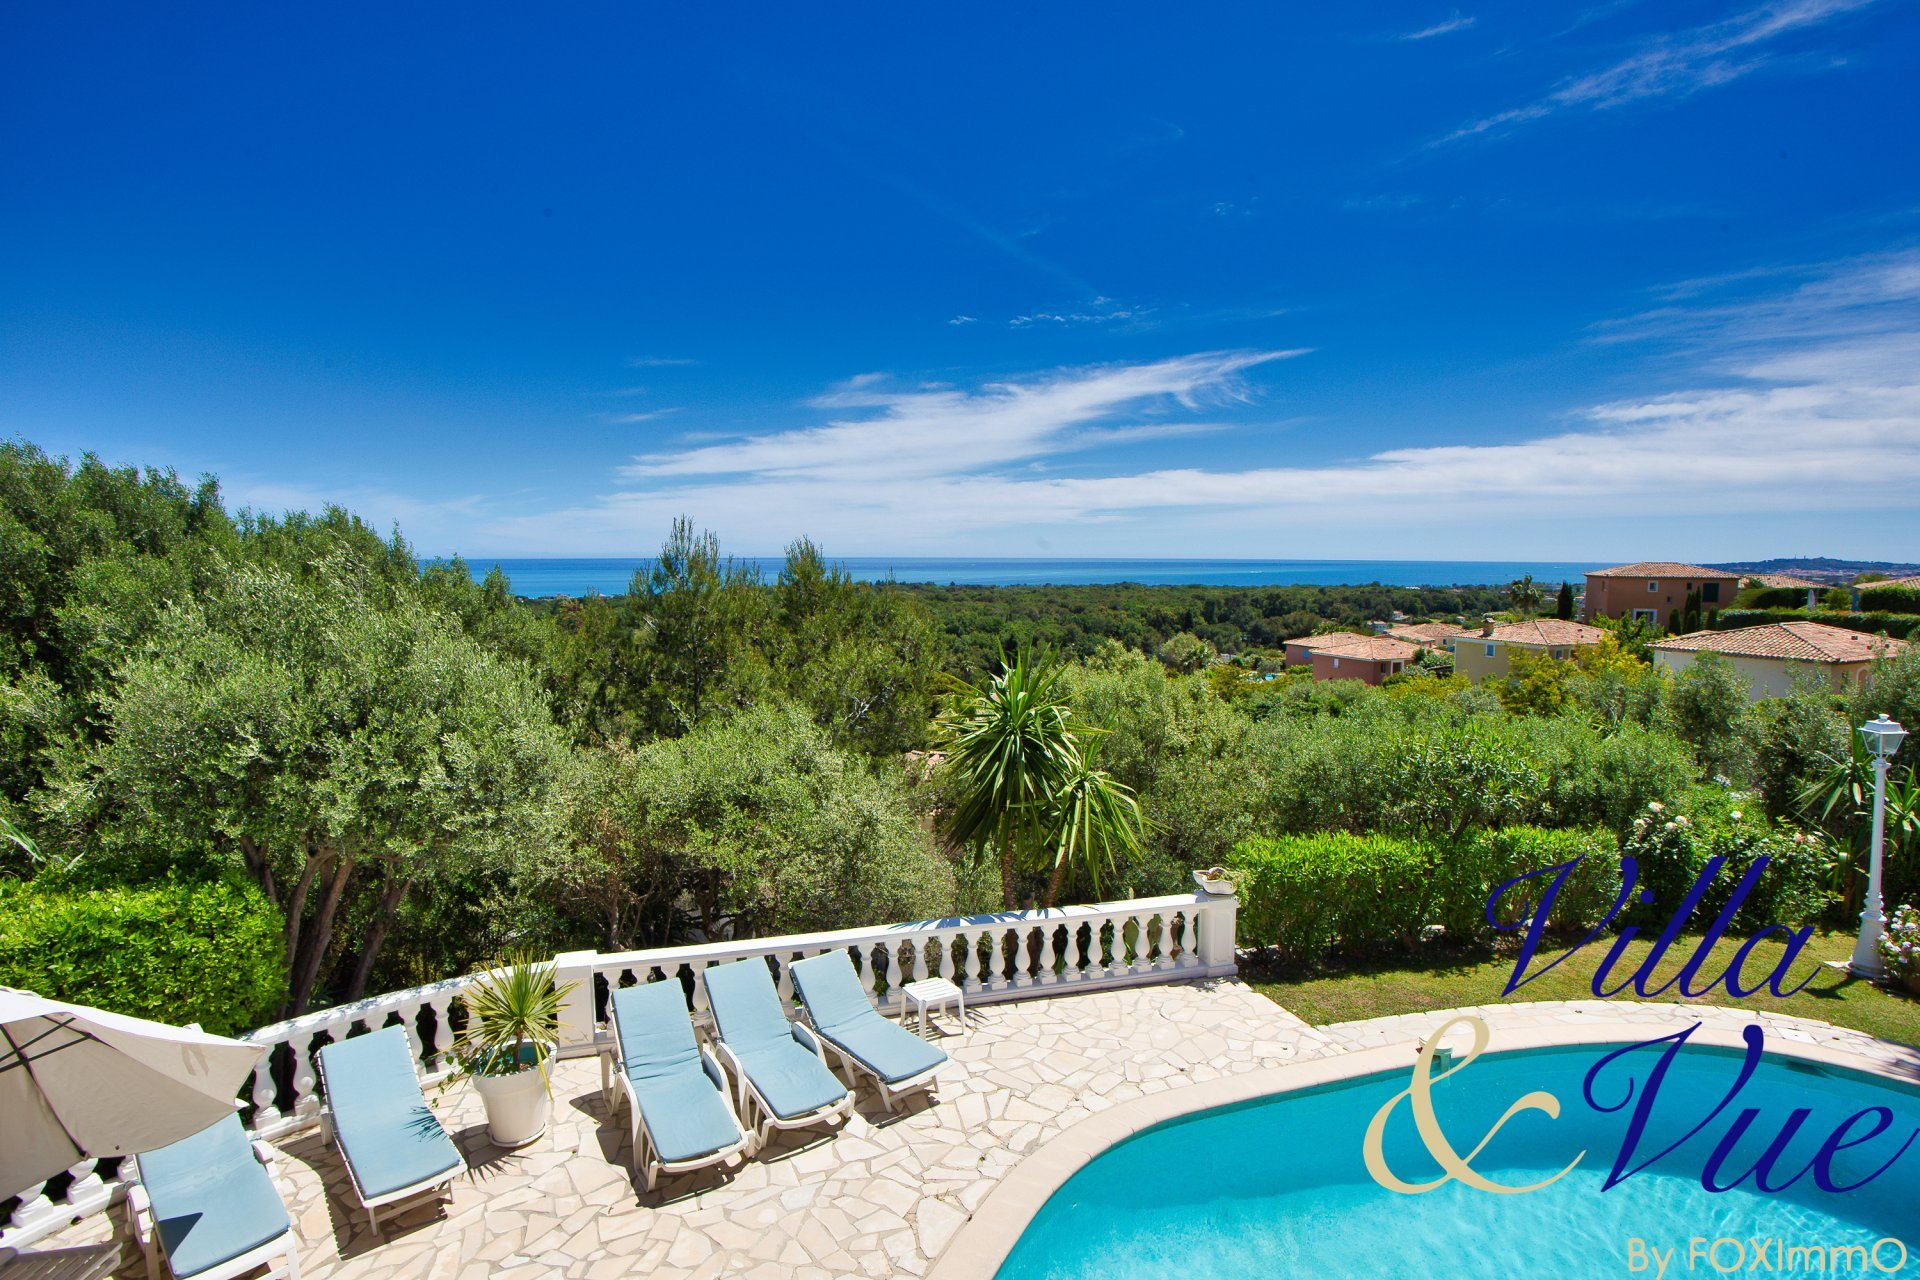 On the French Riviera, superb villa with panoramic sea view, swimming pool, terrace